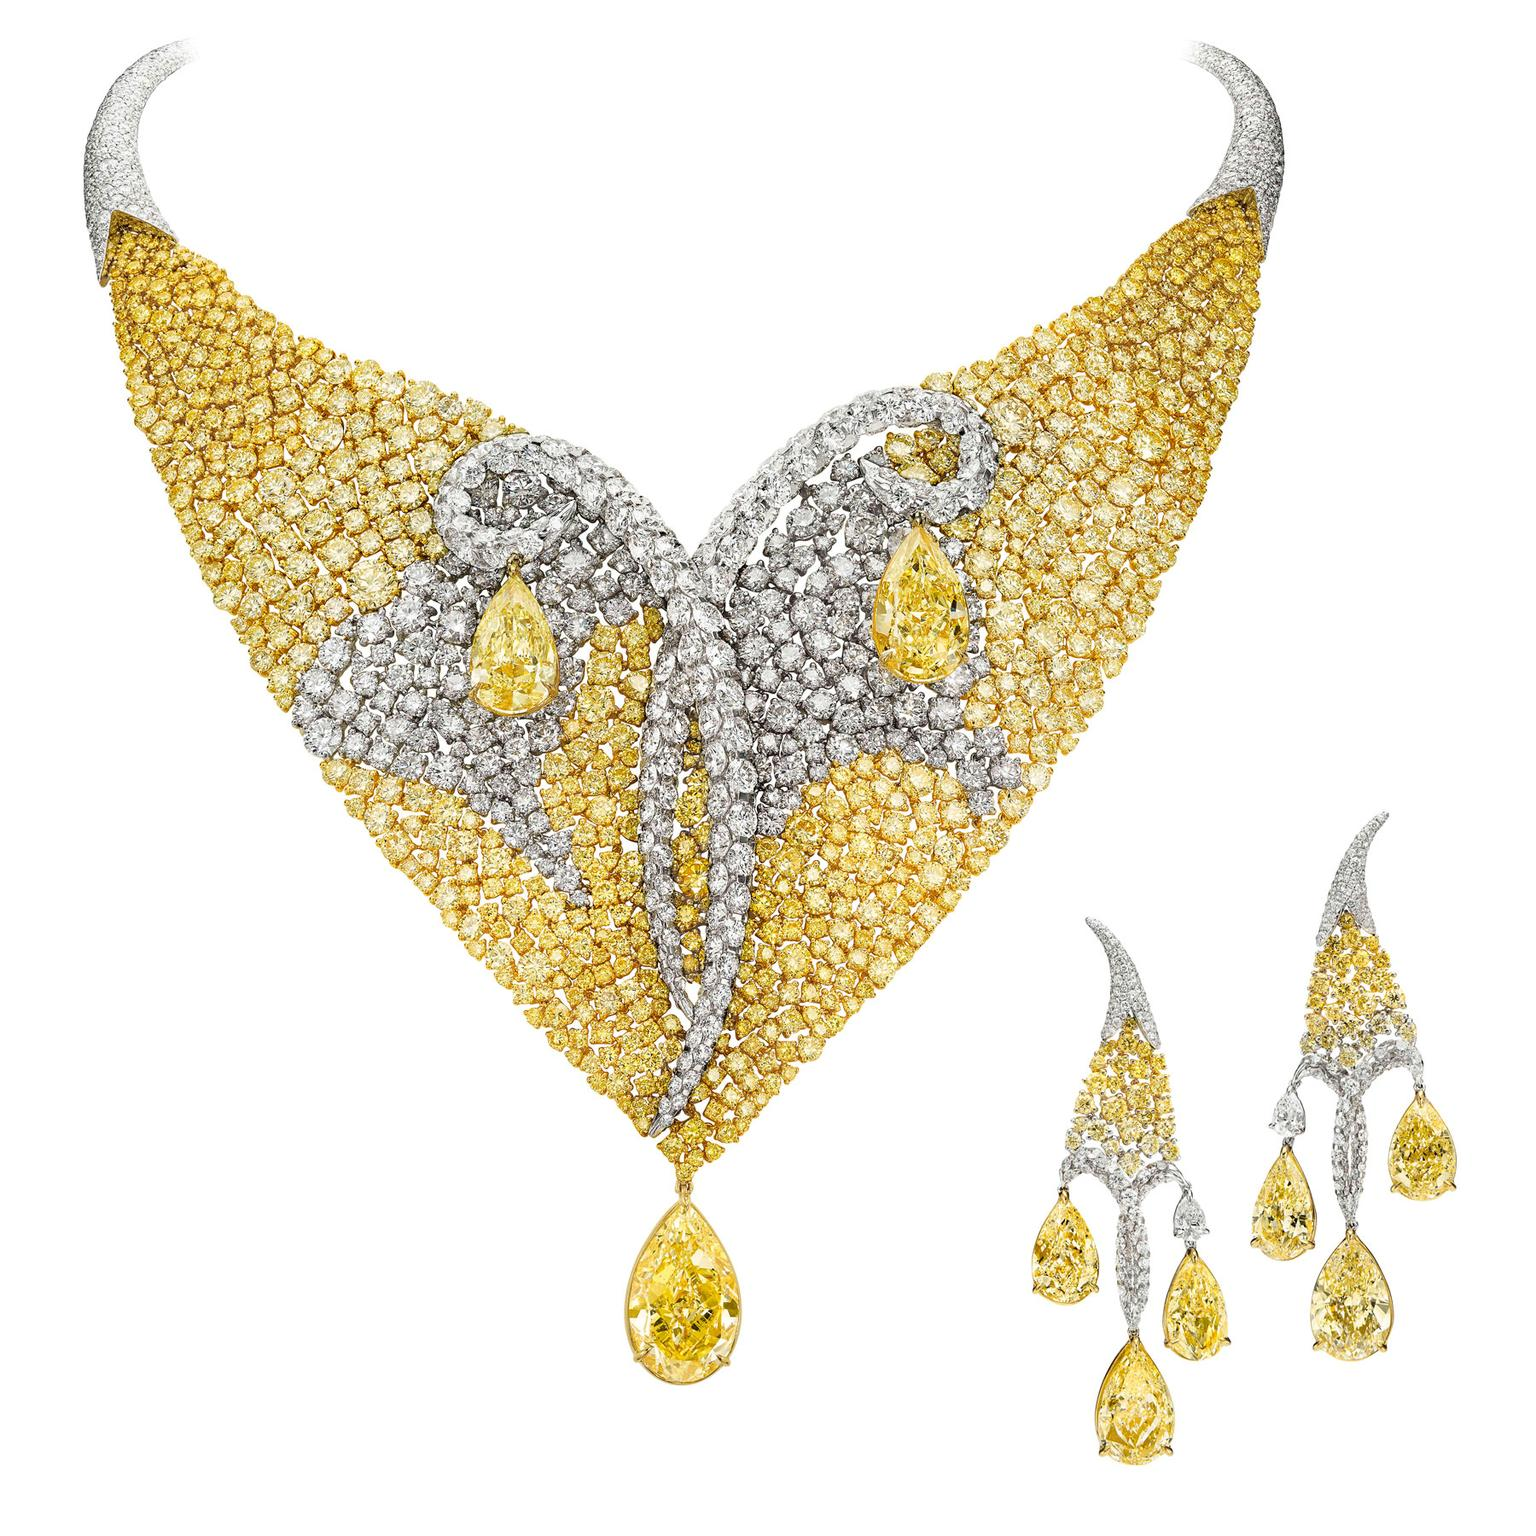 Boghossian Les Merveilles Meche Yellow And White Diamond Necklace Matching Earrings